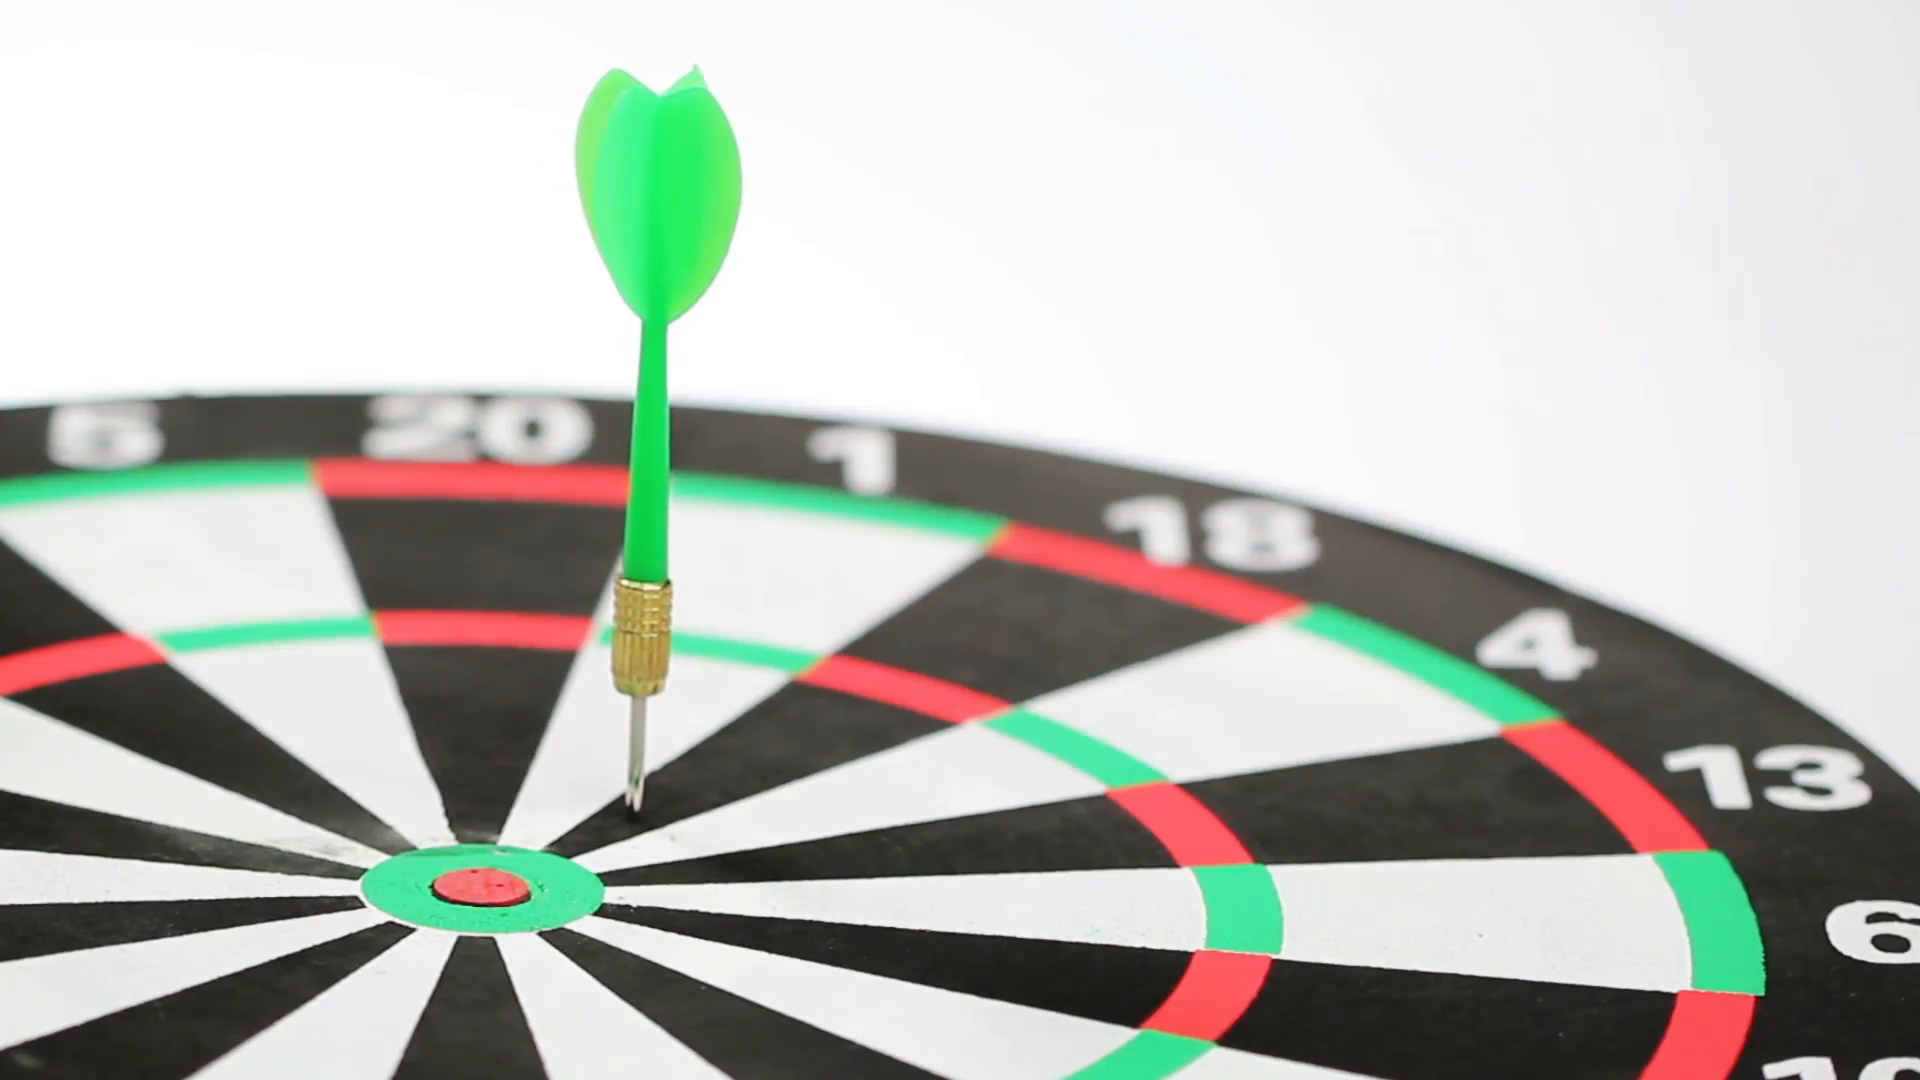 Six darts in red and green color hitting the dartboard, low angle shot,  white background Stock Video Footage - VideoBlocks - Dart Board PNG HD